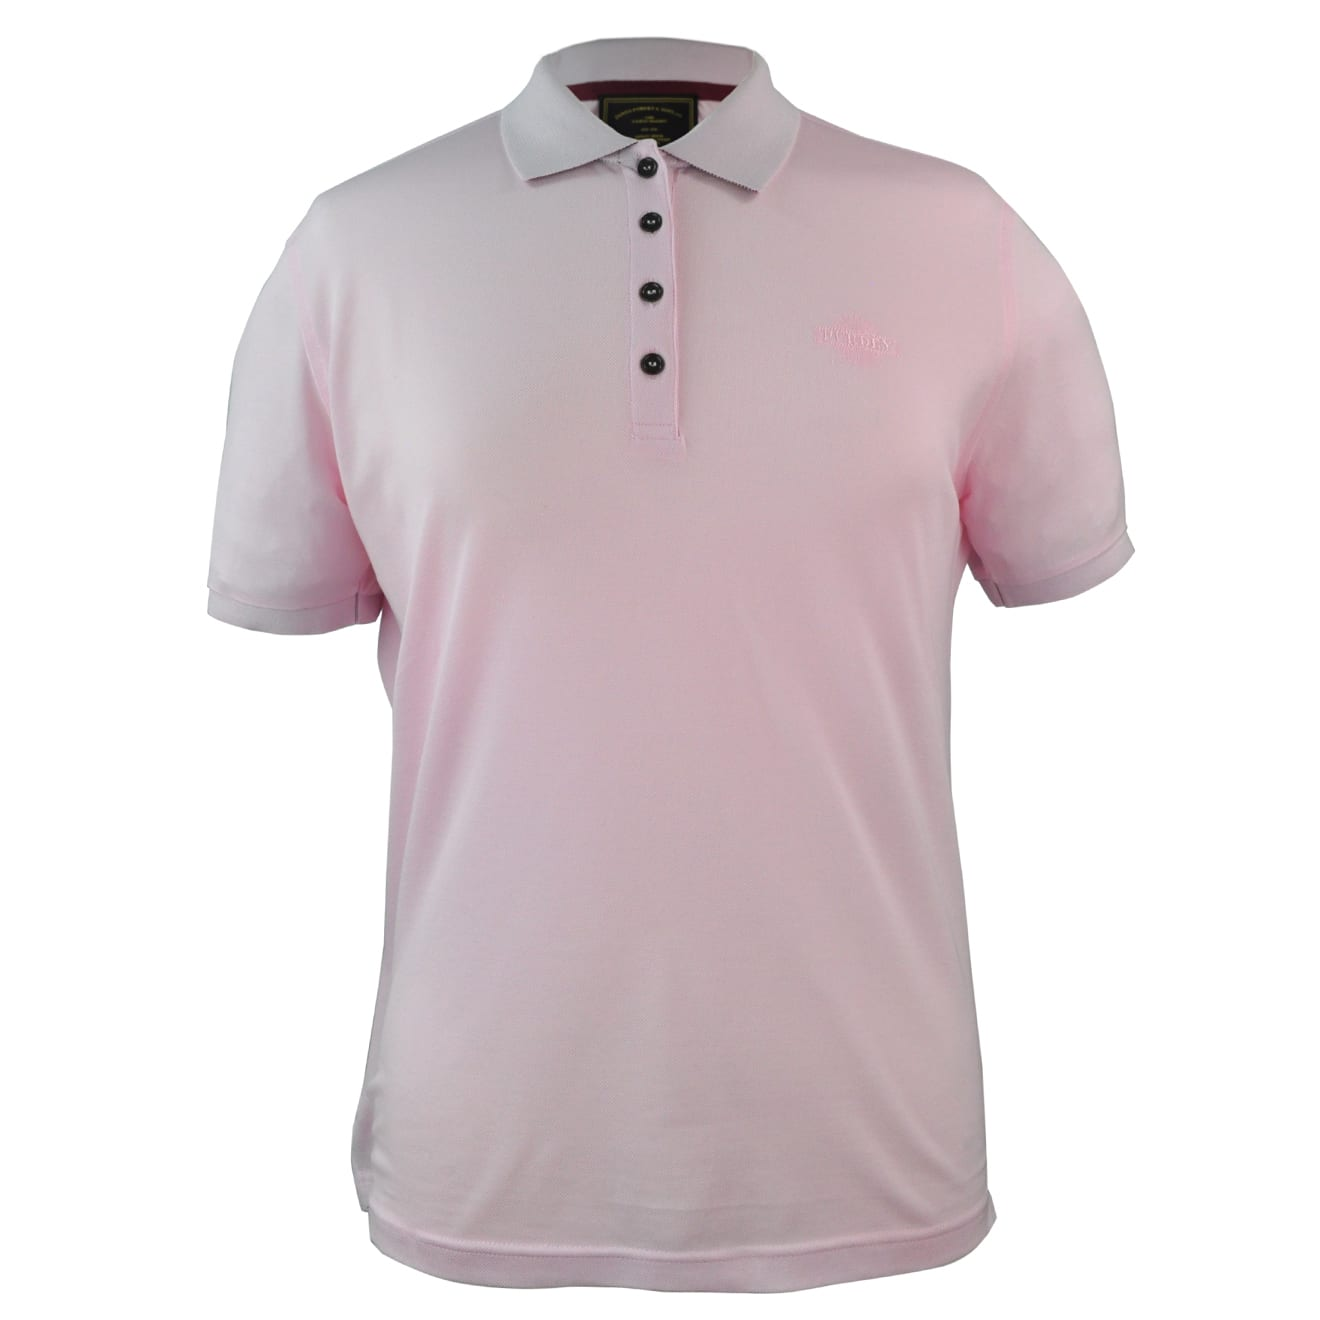 James Purdey Womens Polo Shirt The Sporting Lodge